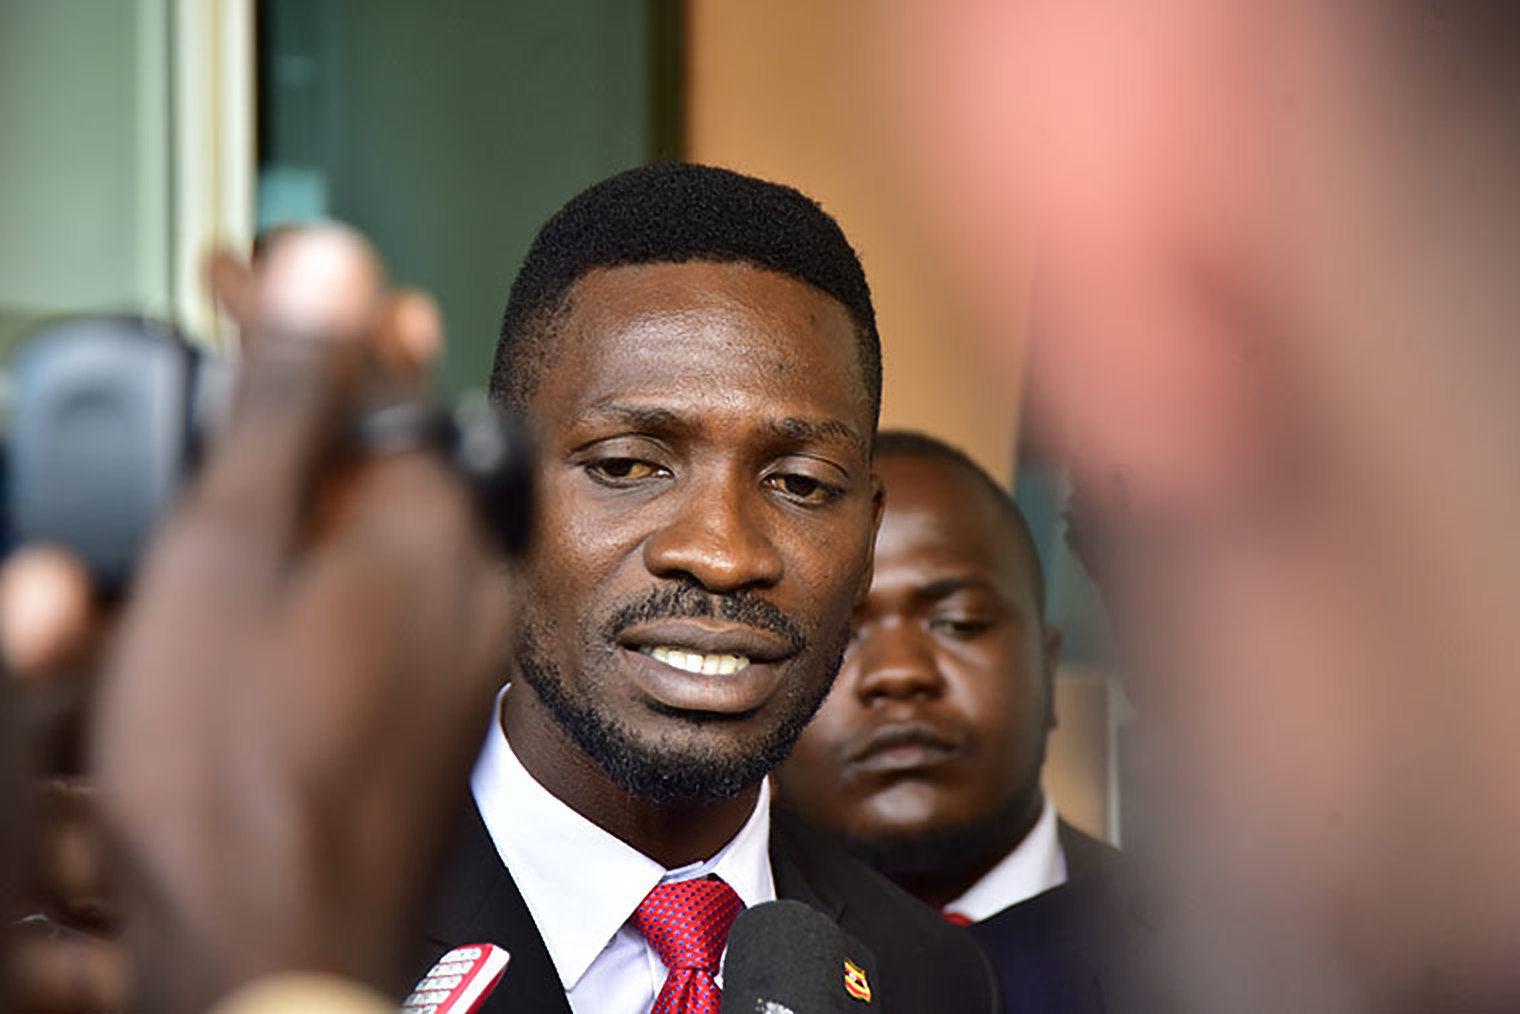 Kyadondo East MP Robert Kyagulanyi alias Bobi Wine speaks to the press (FILE PHOTO)